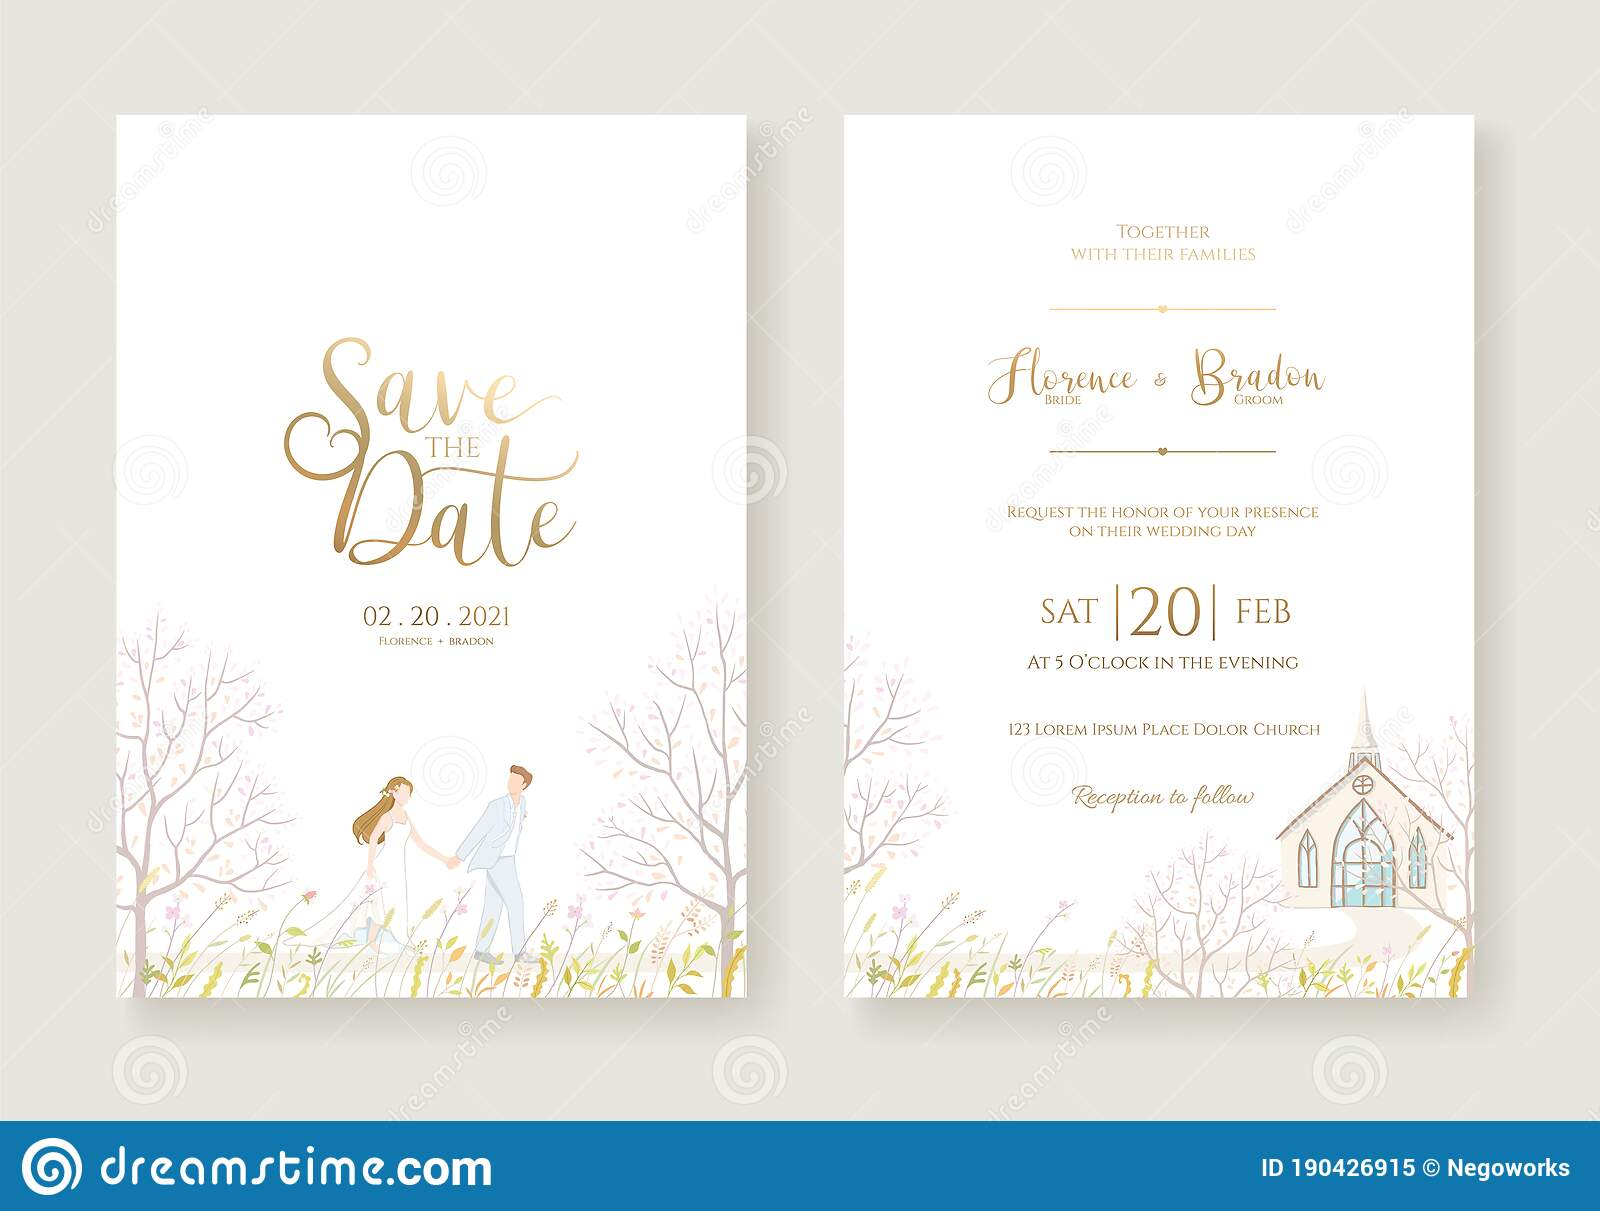 Wedding Invitation, Save The Date, Thank You, Rsvp Card Design Intended For Church Wedding Invitation Card Template